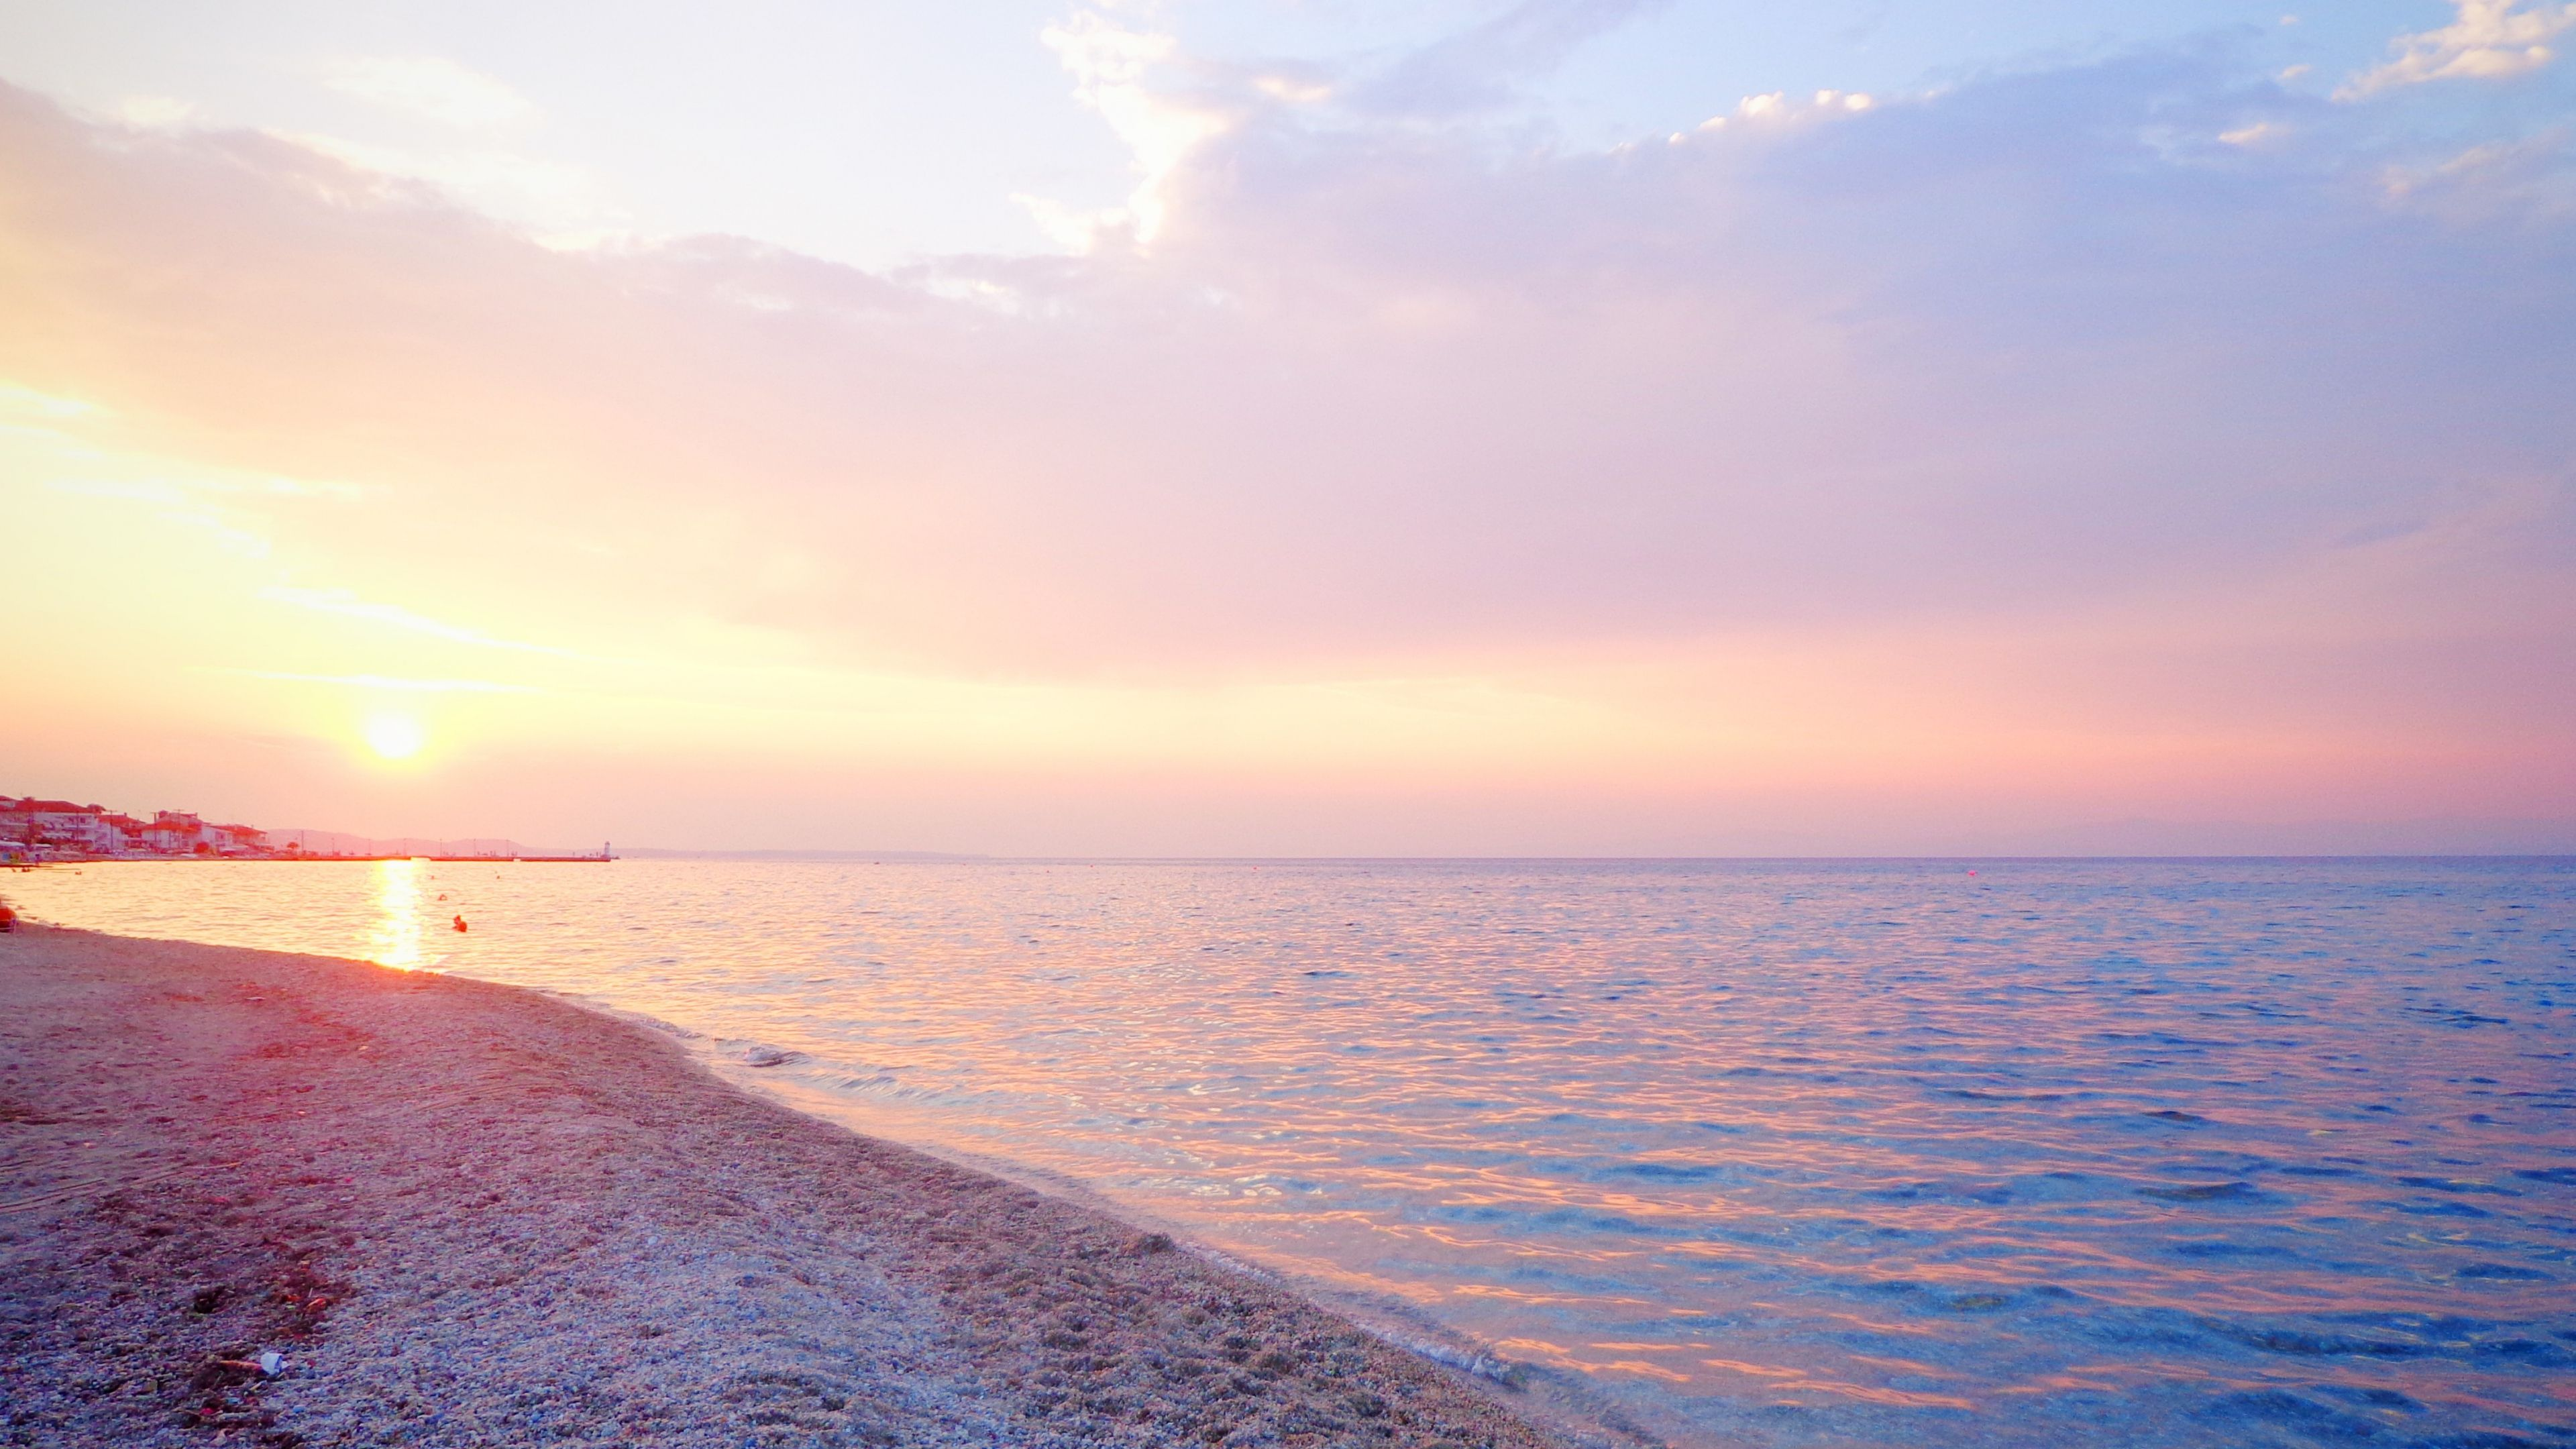 Greece Sea Beach Sunset 4k Hd Wallpapers Pink Ocean Wallpaper Beach Wallpaper Greece Wallpaper